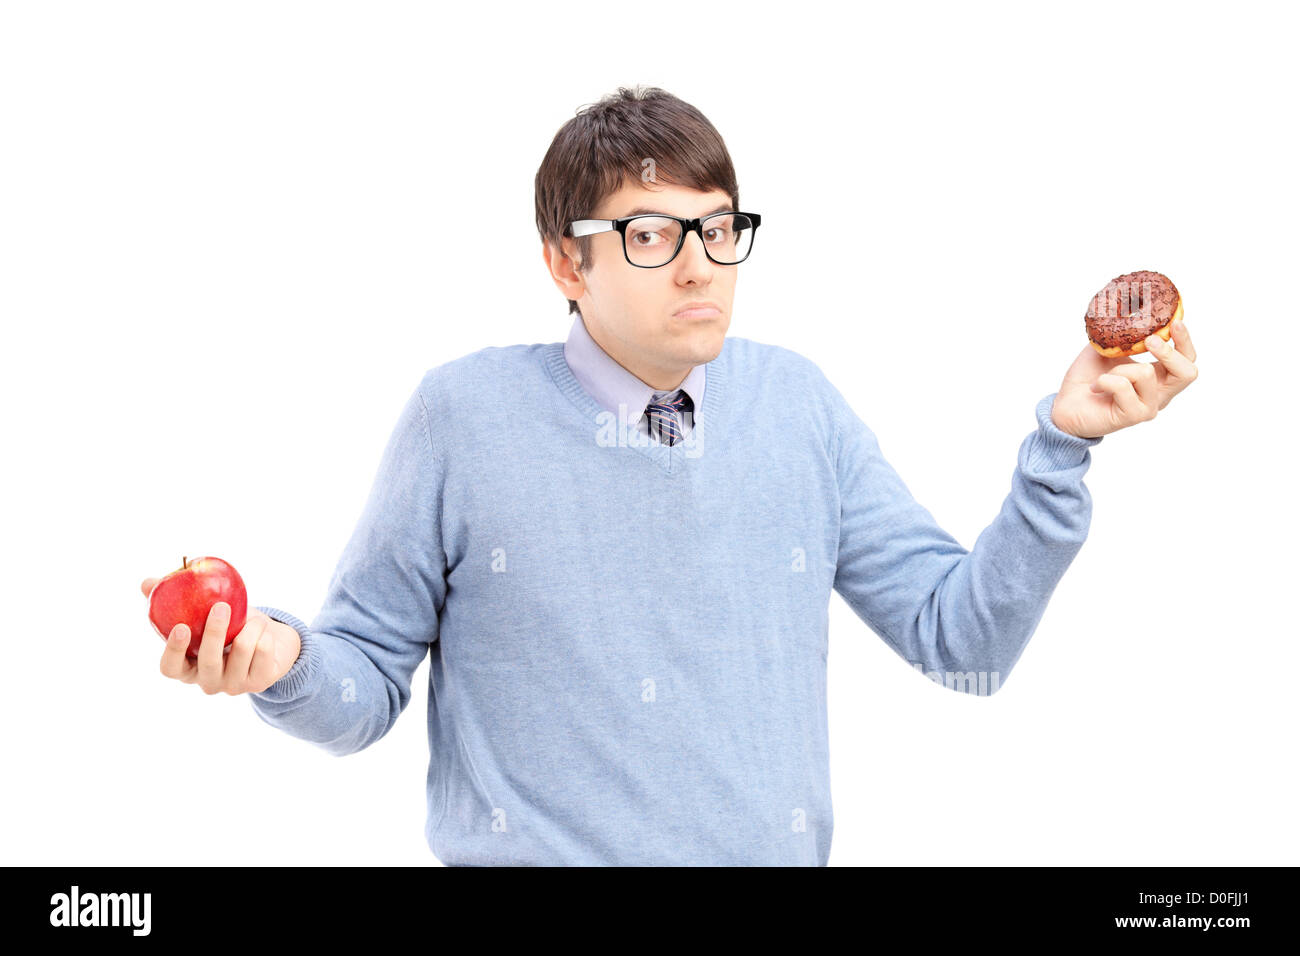 A doubtful guy holding an apple and donut trying to decide which one to eat - Stock Image